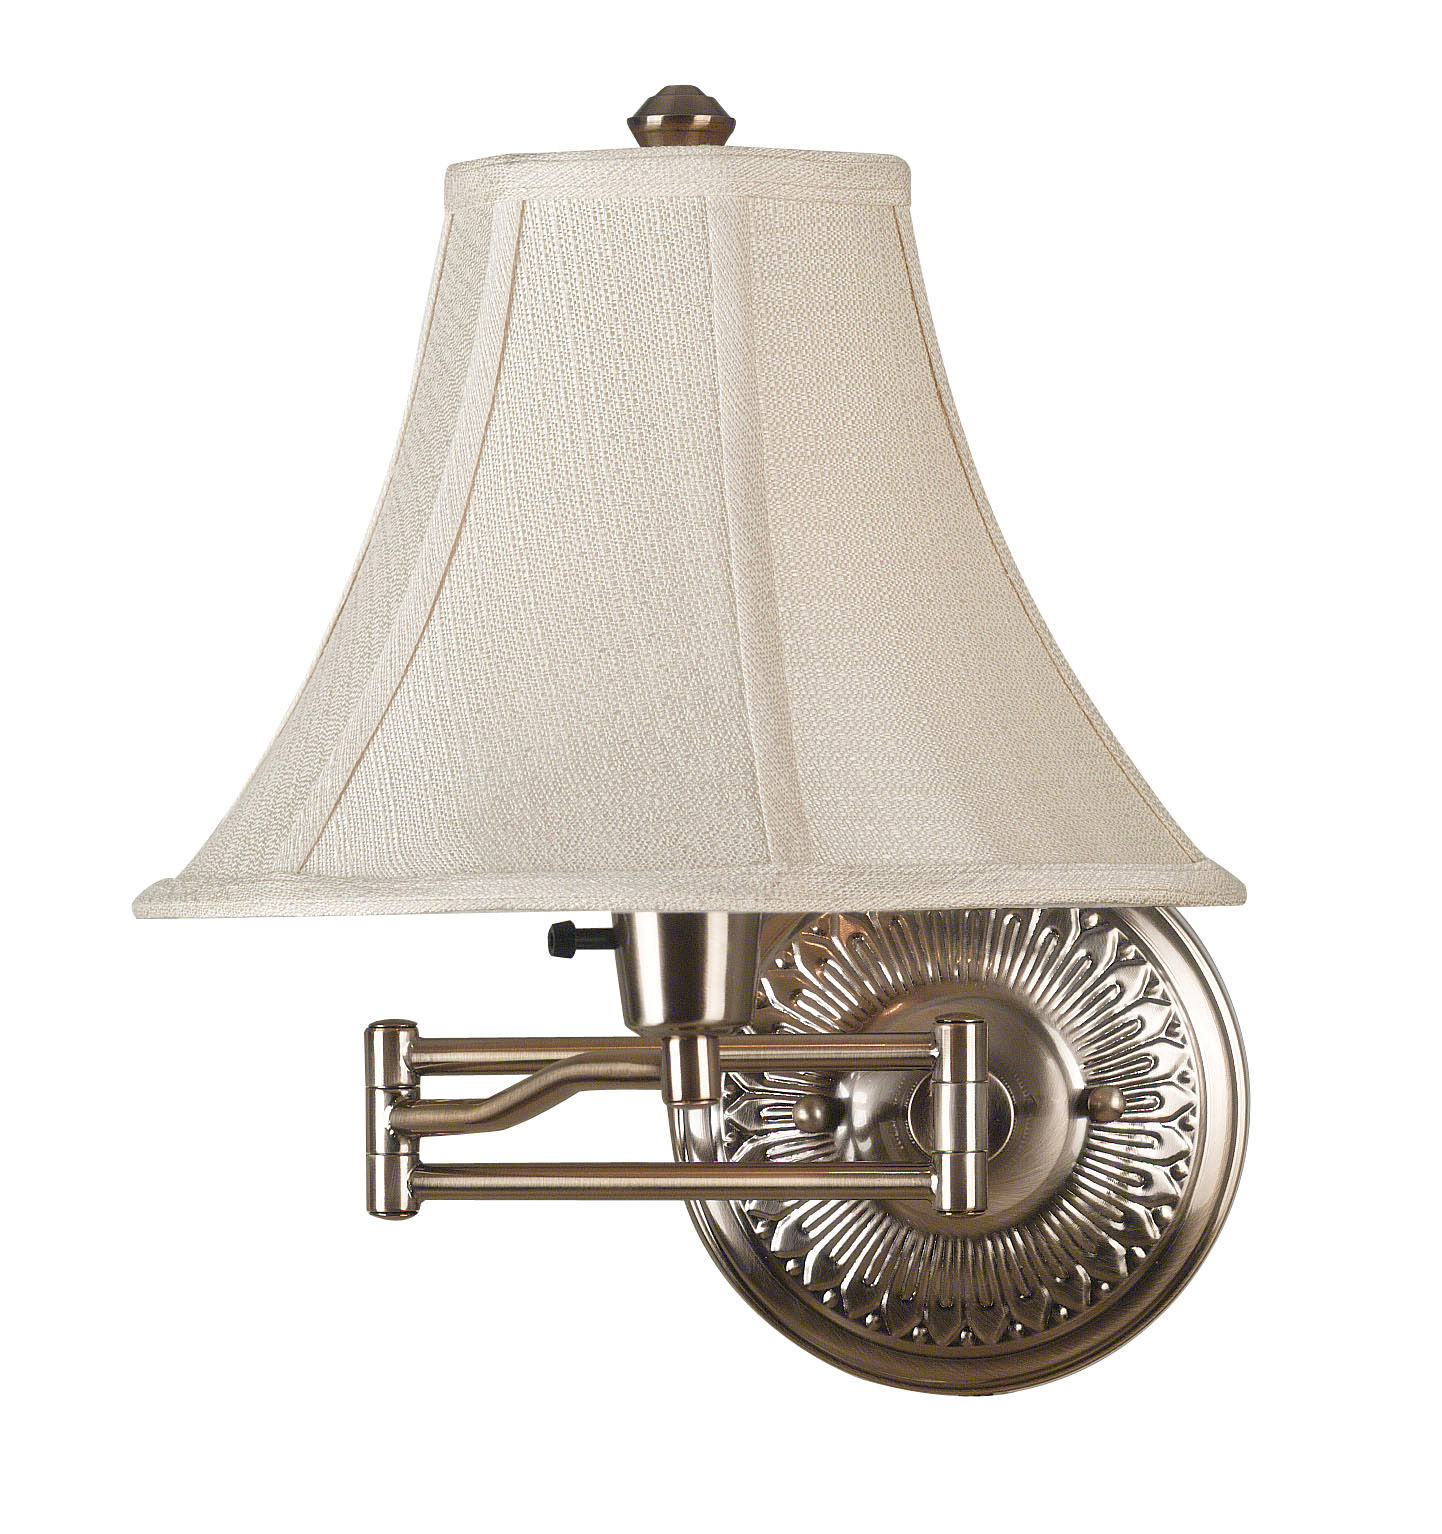 Wall Lamps For Pictures : Kenroy Home 21395BRBR Amherst Swing Arm Wall Lamp